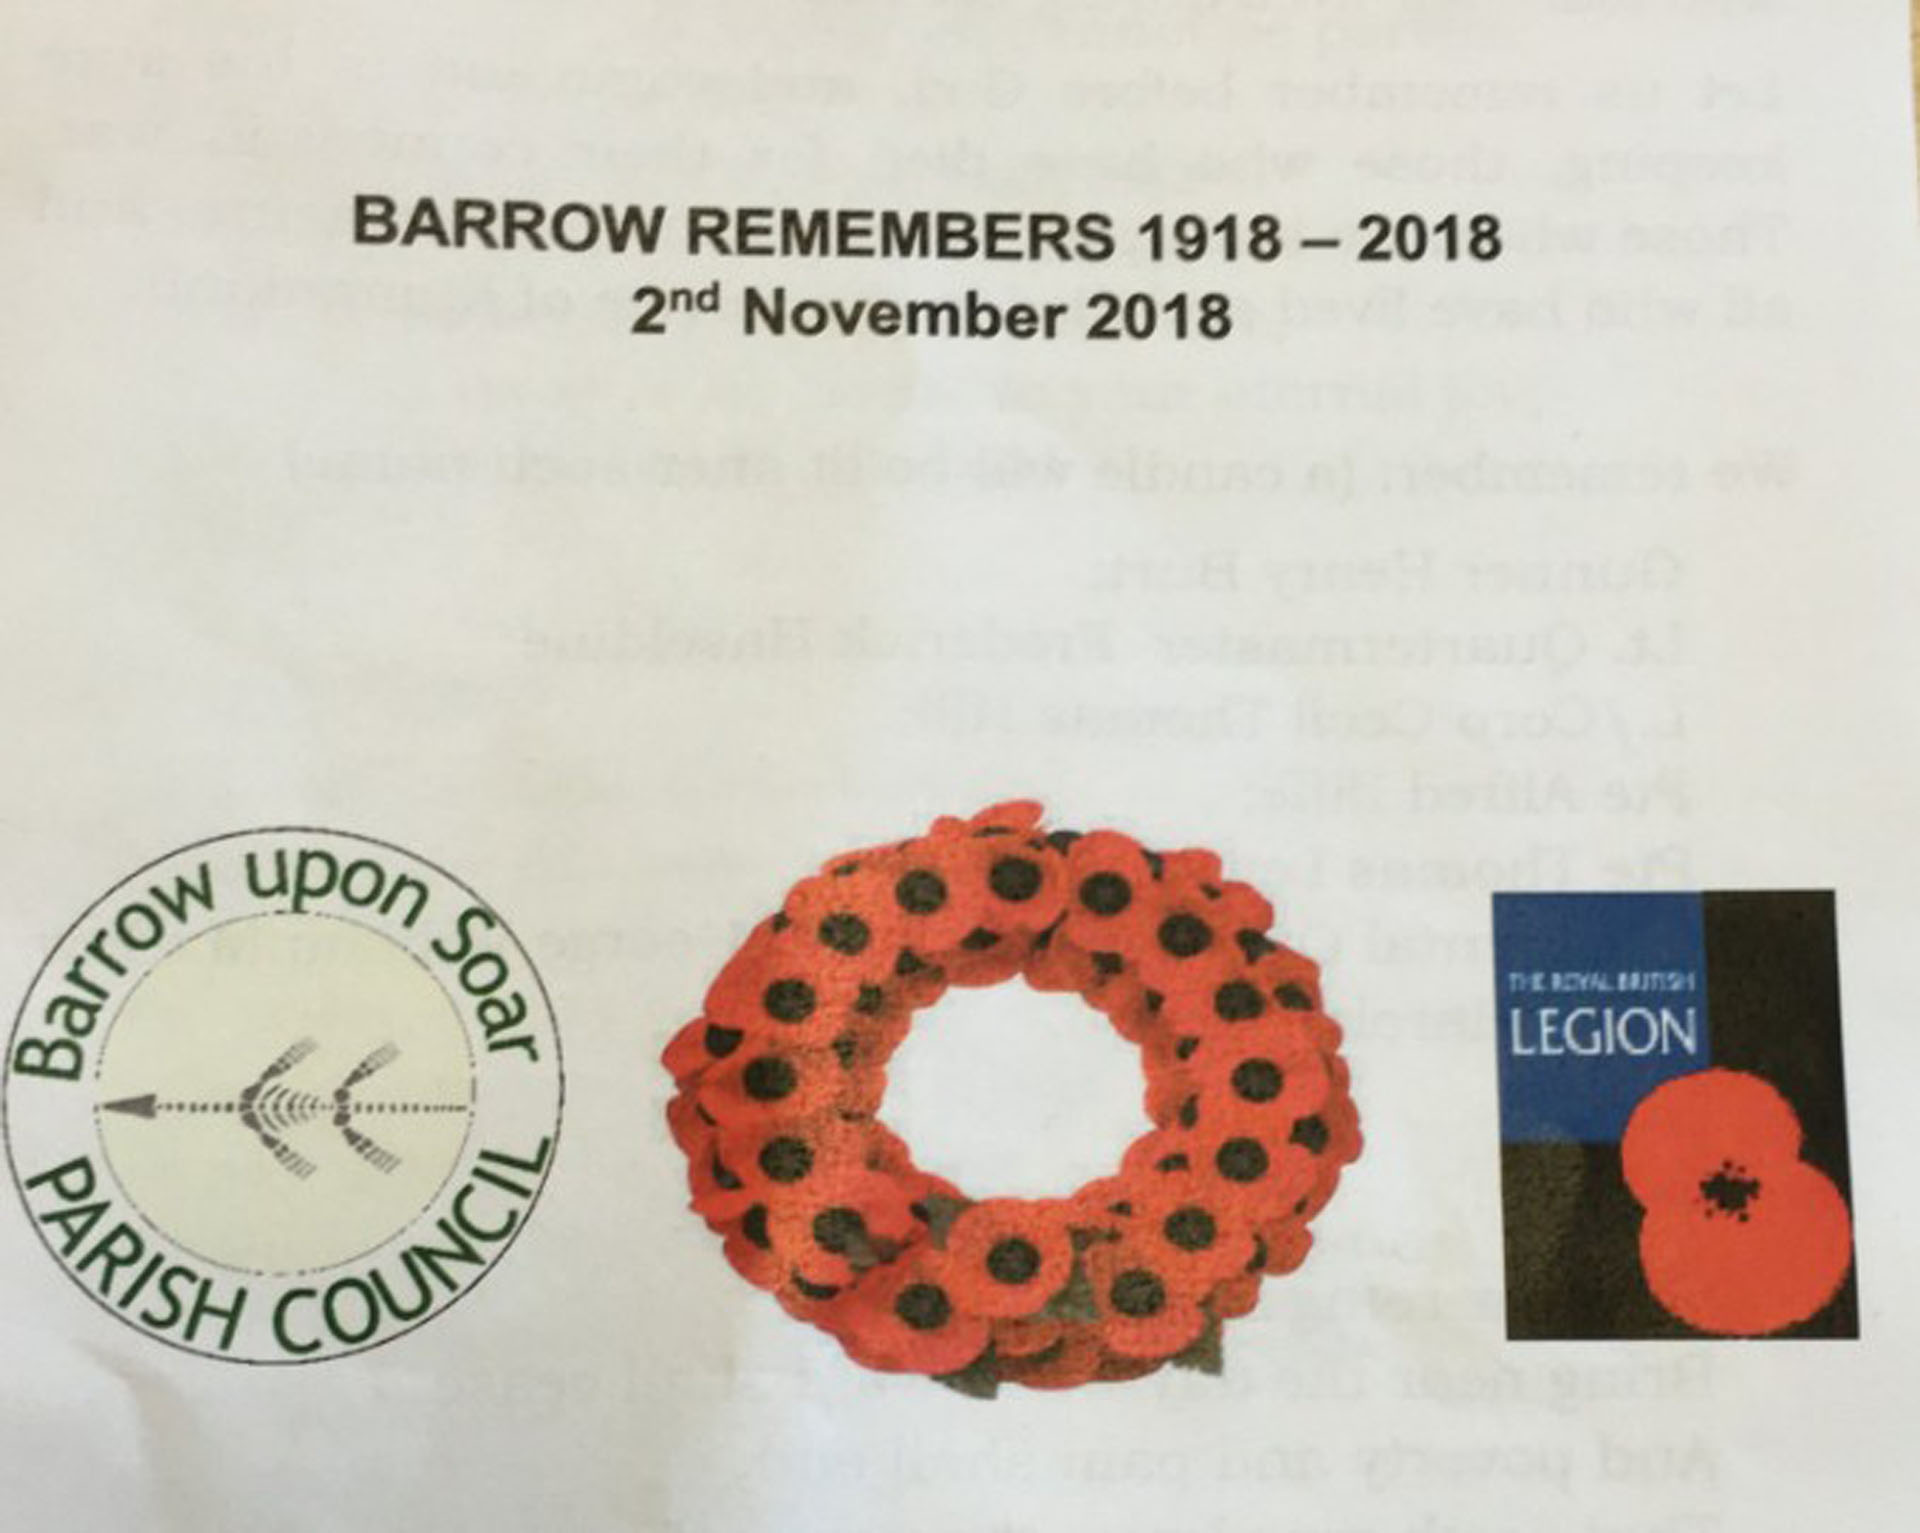 BARROW REMEMBERS